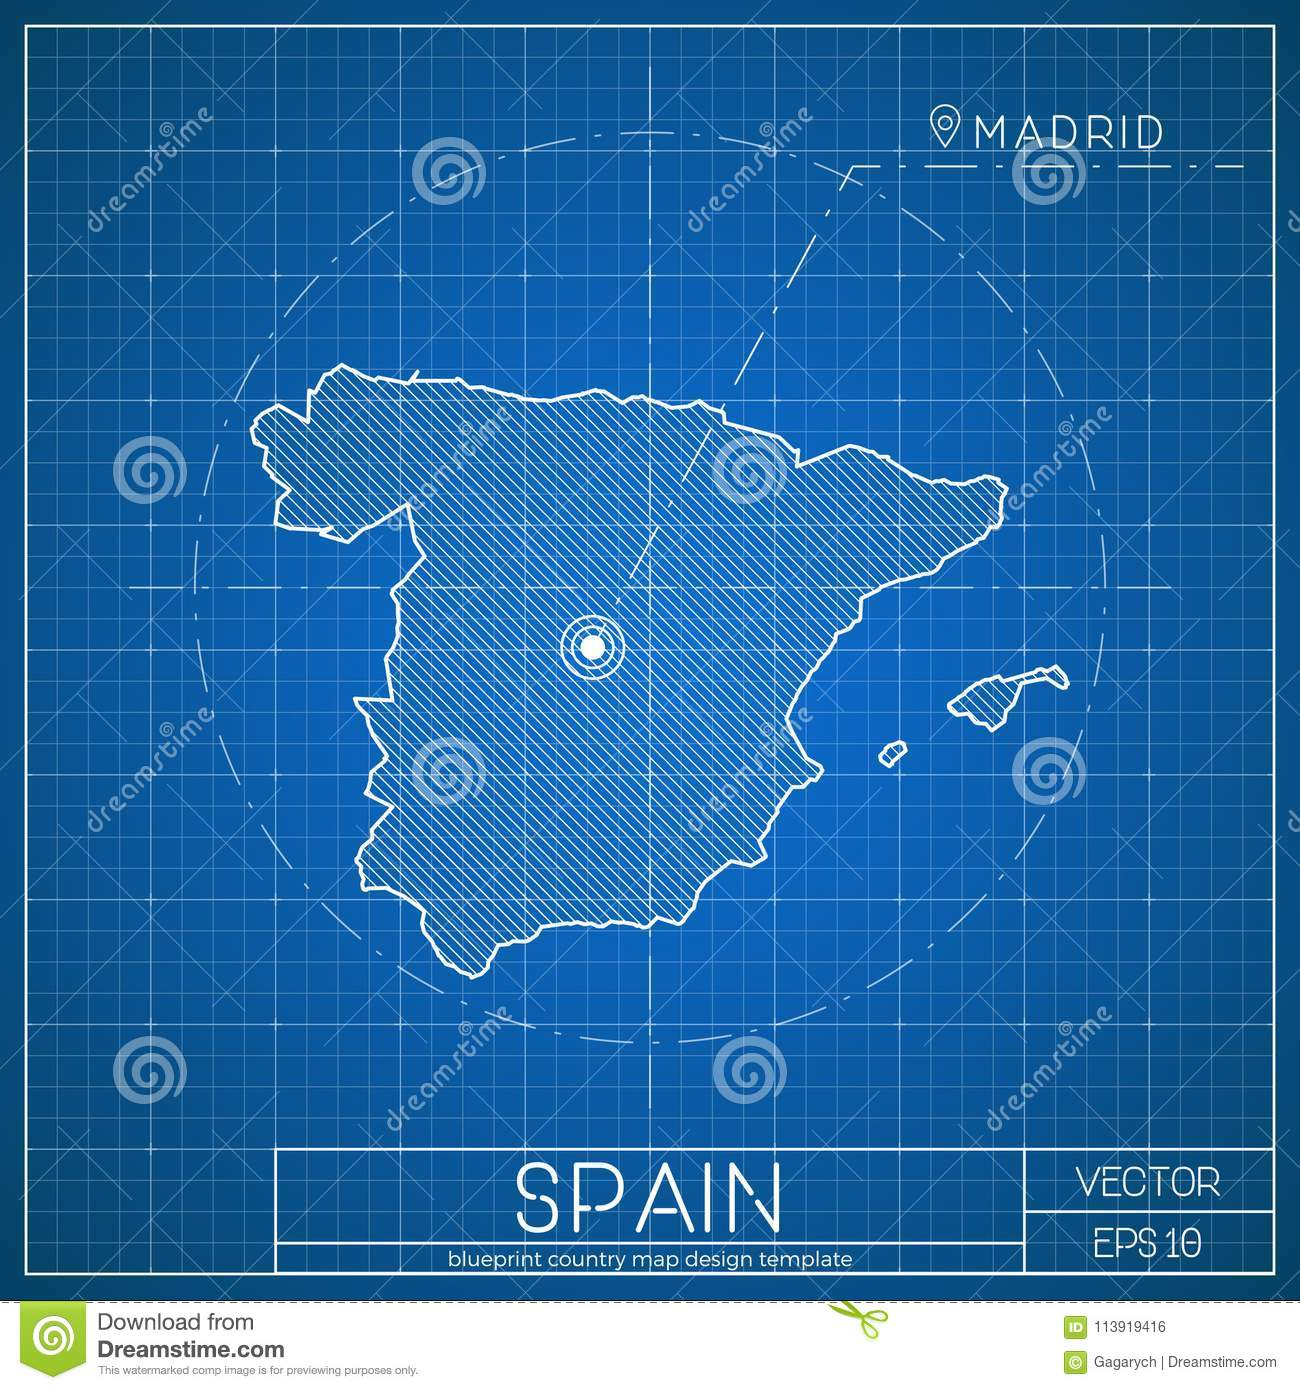 Spain blueprint map template with capital city stock vector spain blueprint map template with capital city malvernweather Gallery